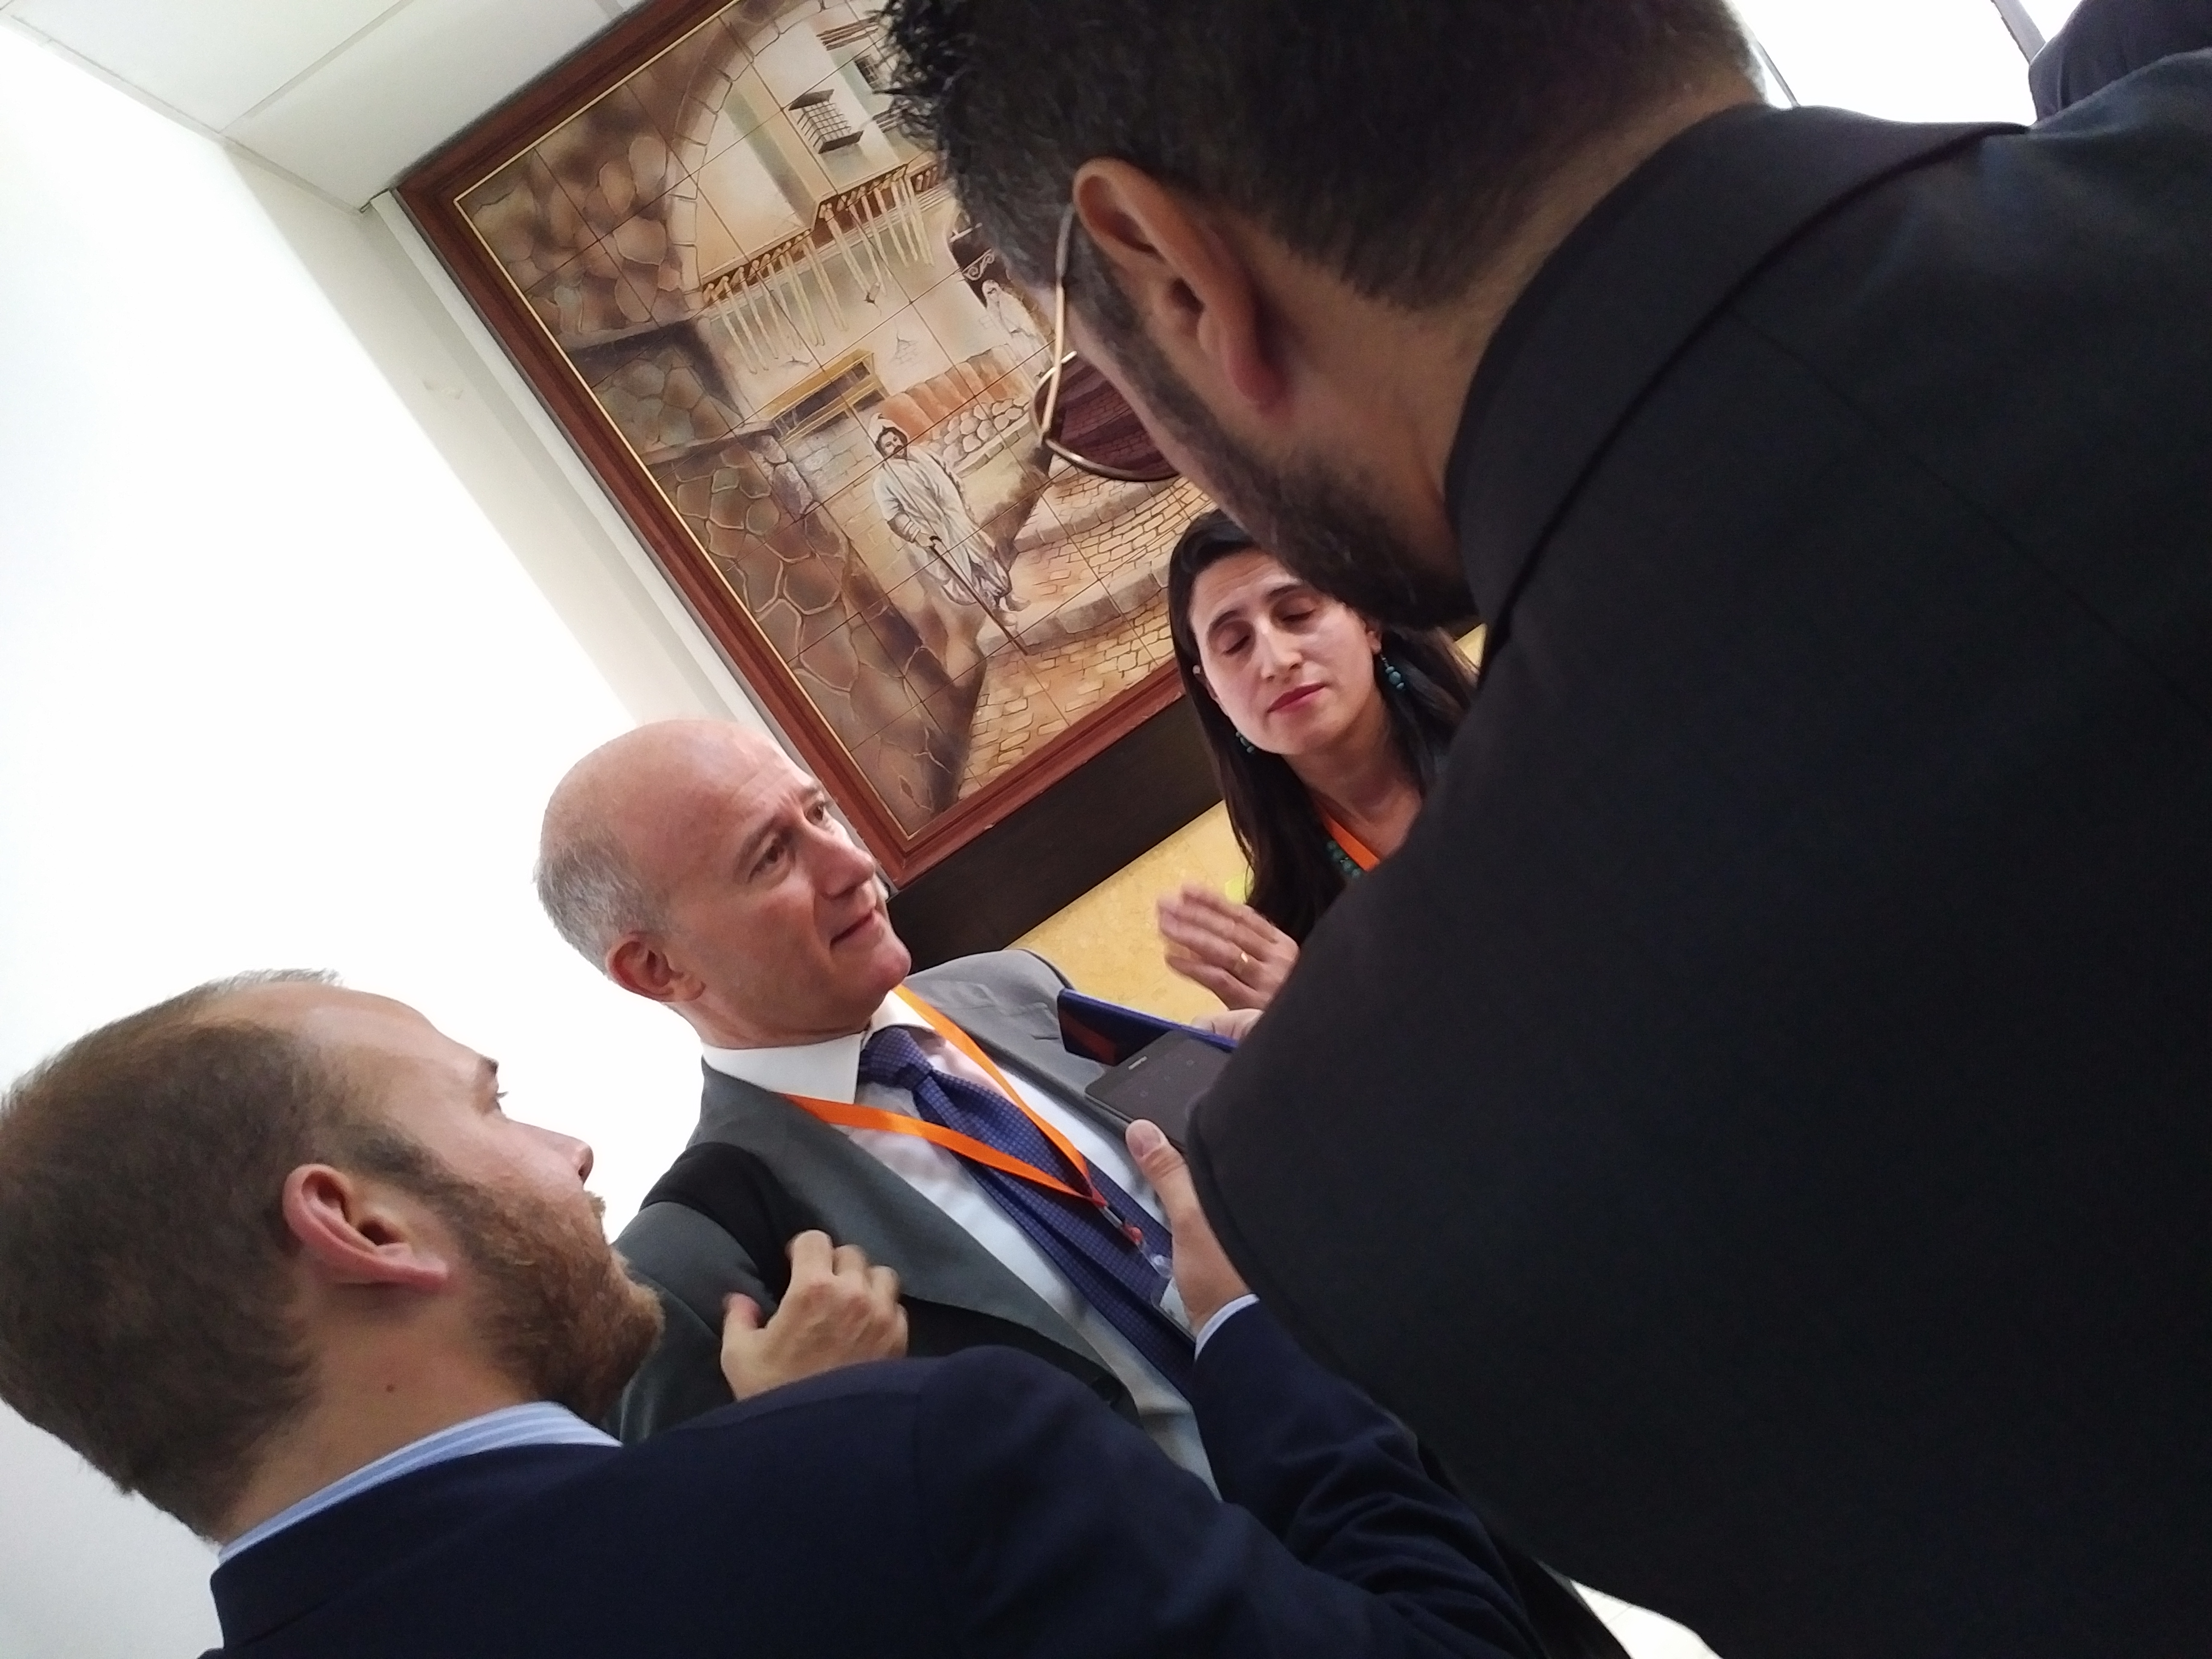 Press Conference - Angelo Ferrante answering to the journalists